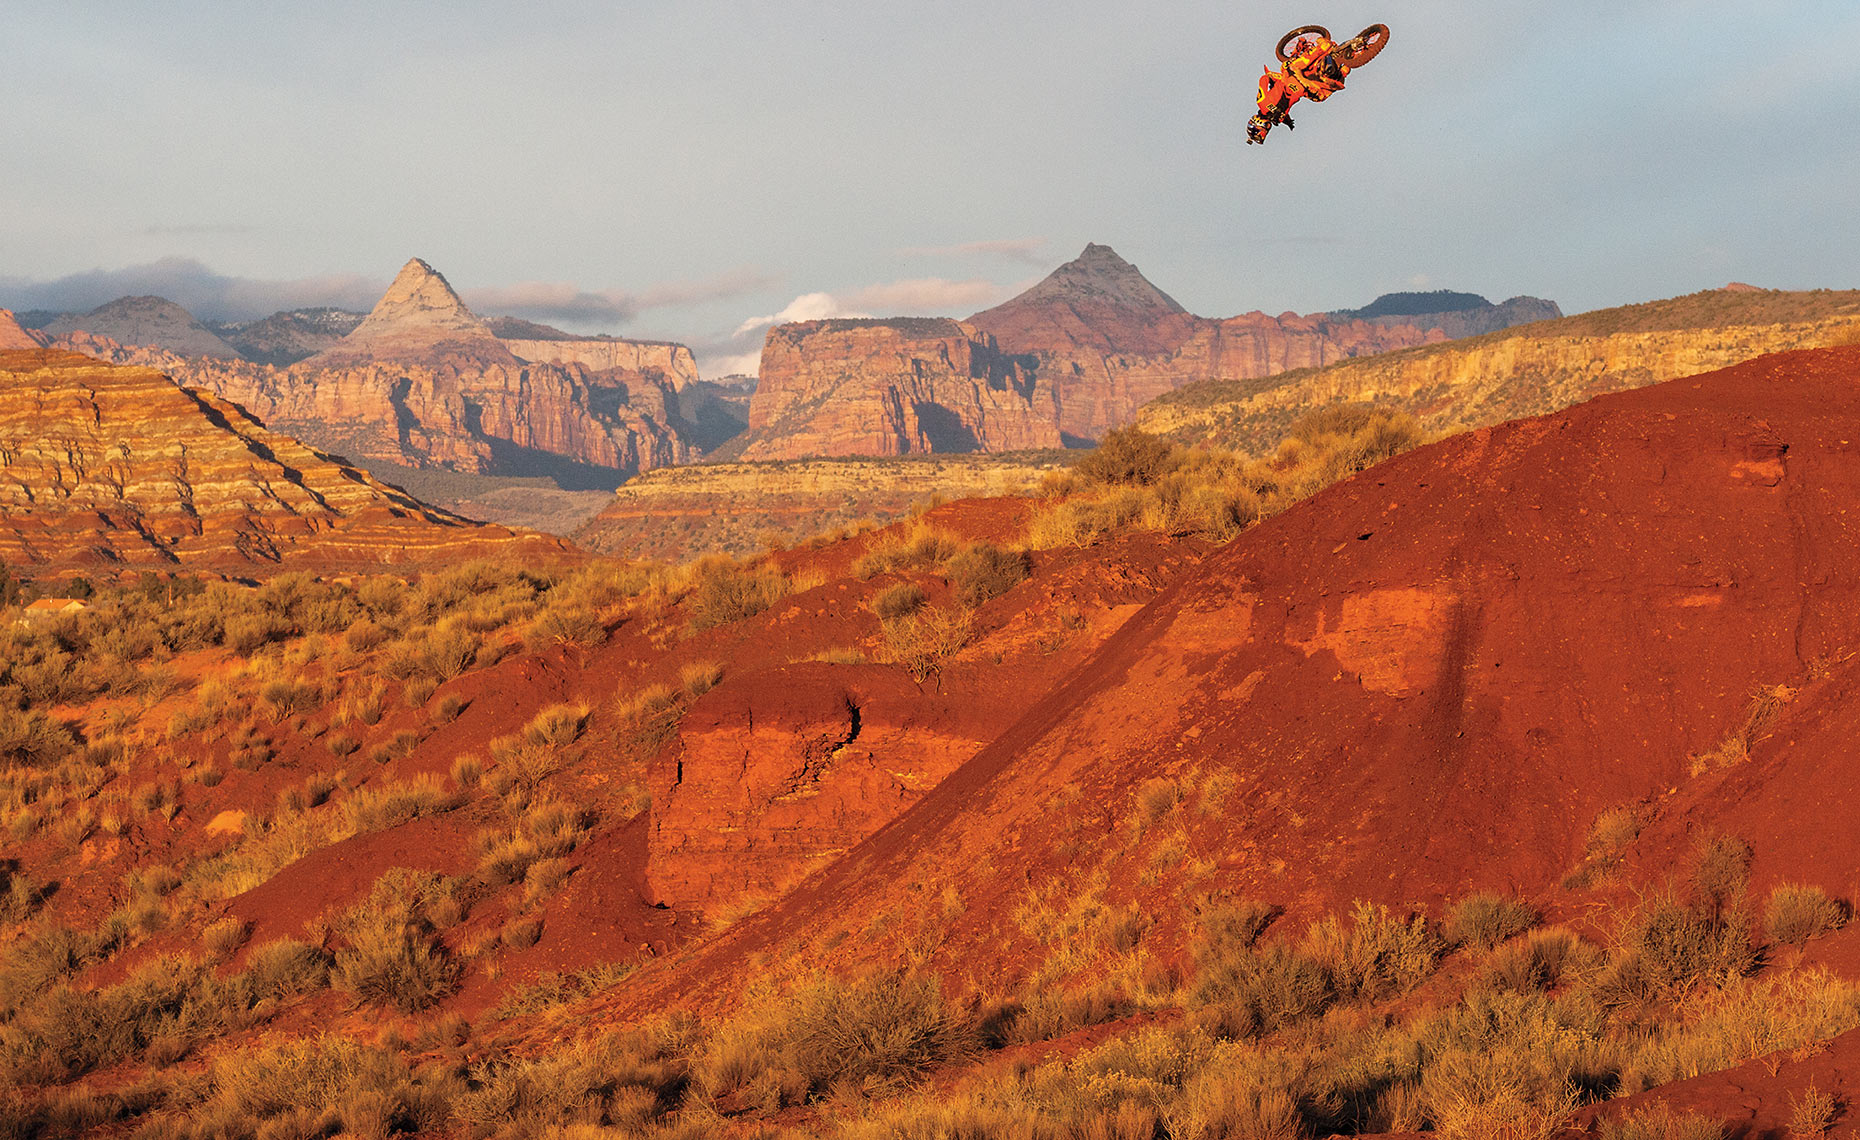 Cam_McCaul_Ronnie_Renner_Fox_Virgin_Utah_Rampage_Chris_Wellhausen_03